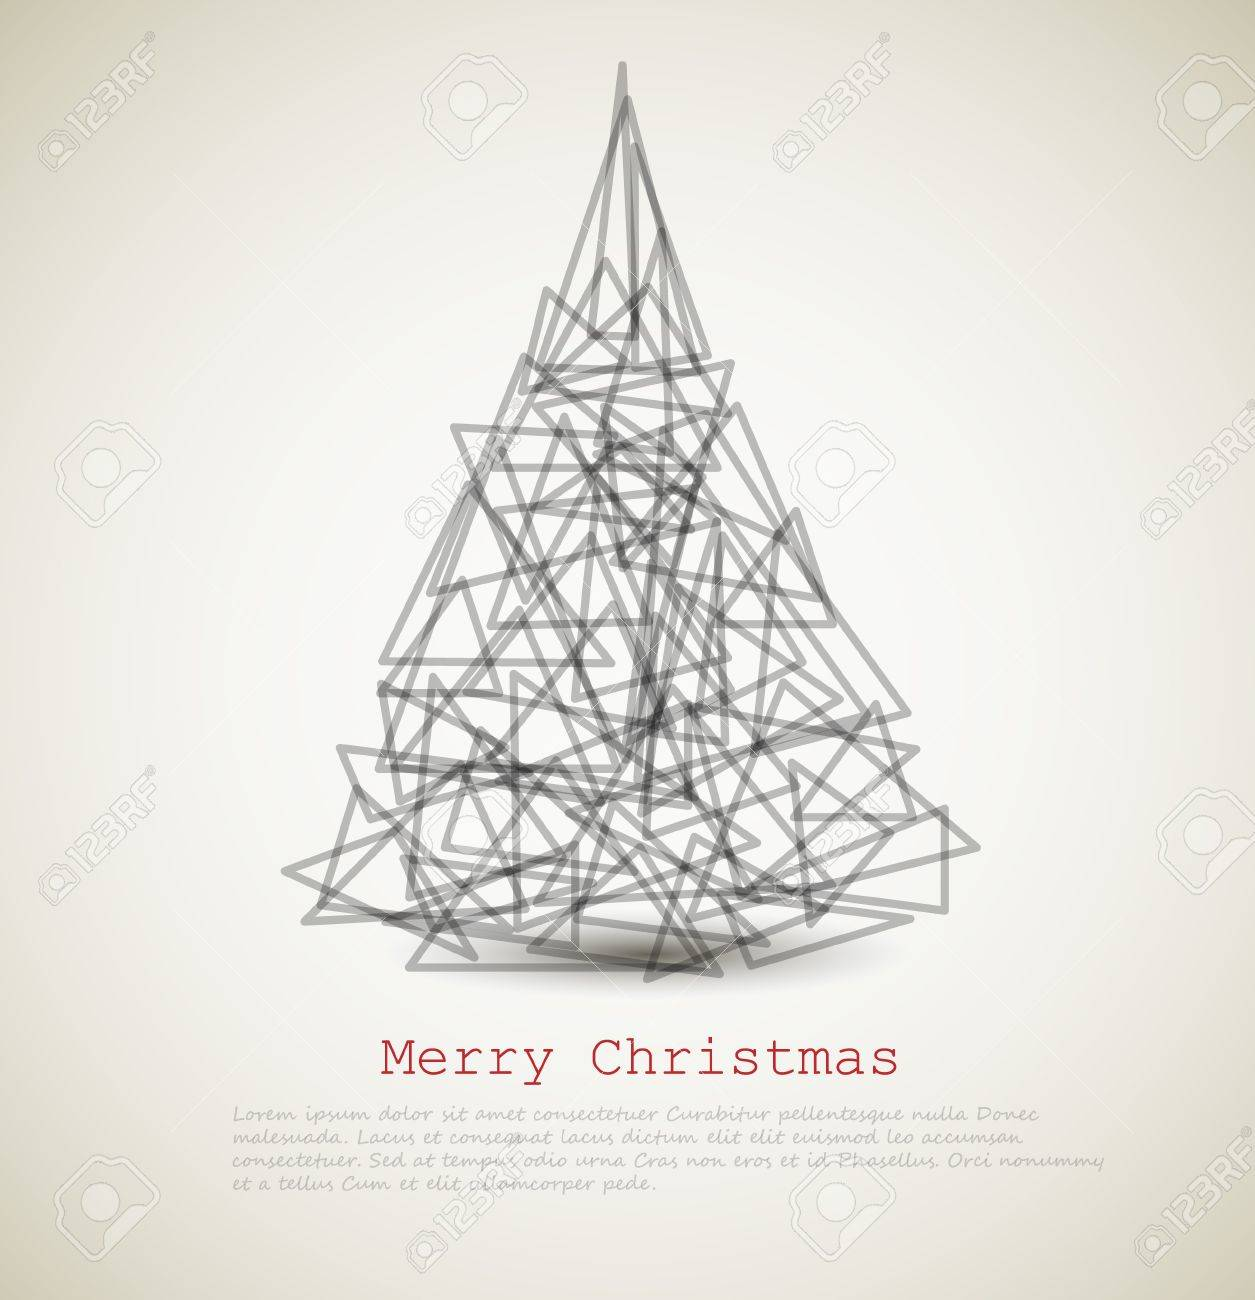 modern card with abstract christmas tree on a light background Stock Vector - 15089561